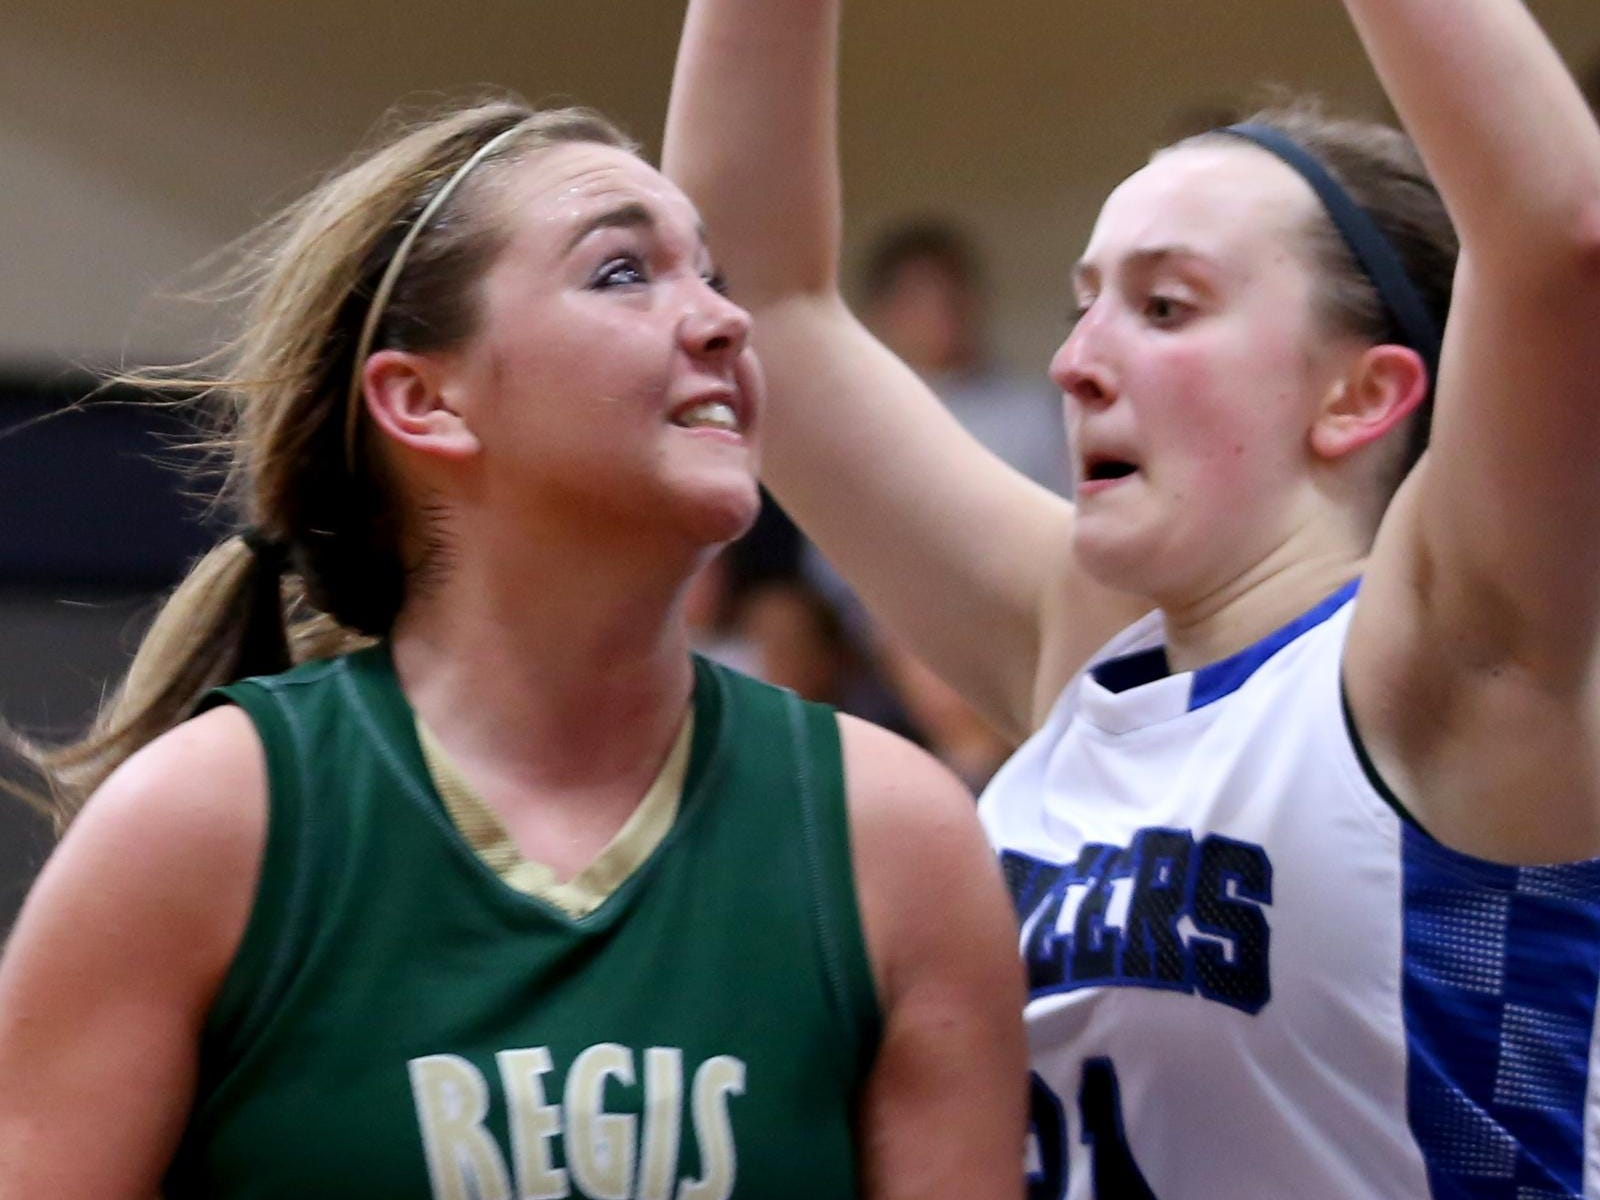 Regis' Abigail Frith (2) eyes the basket while being defended by Western Mennonite's Lexi Pack (21) in the Regis vs. Western Mennonite girl's basketball game at Western Mennonite High School on Wednesday, Feb. 17, 2016.